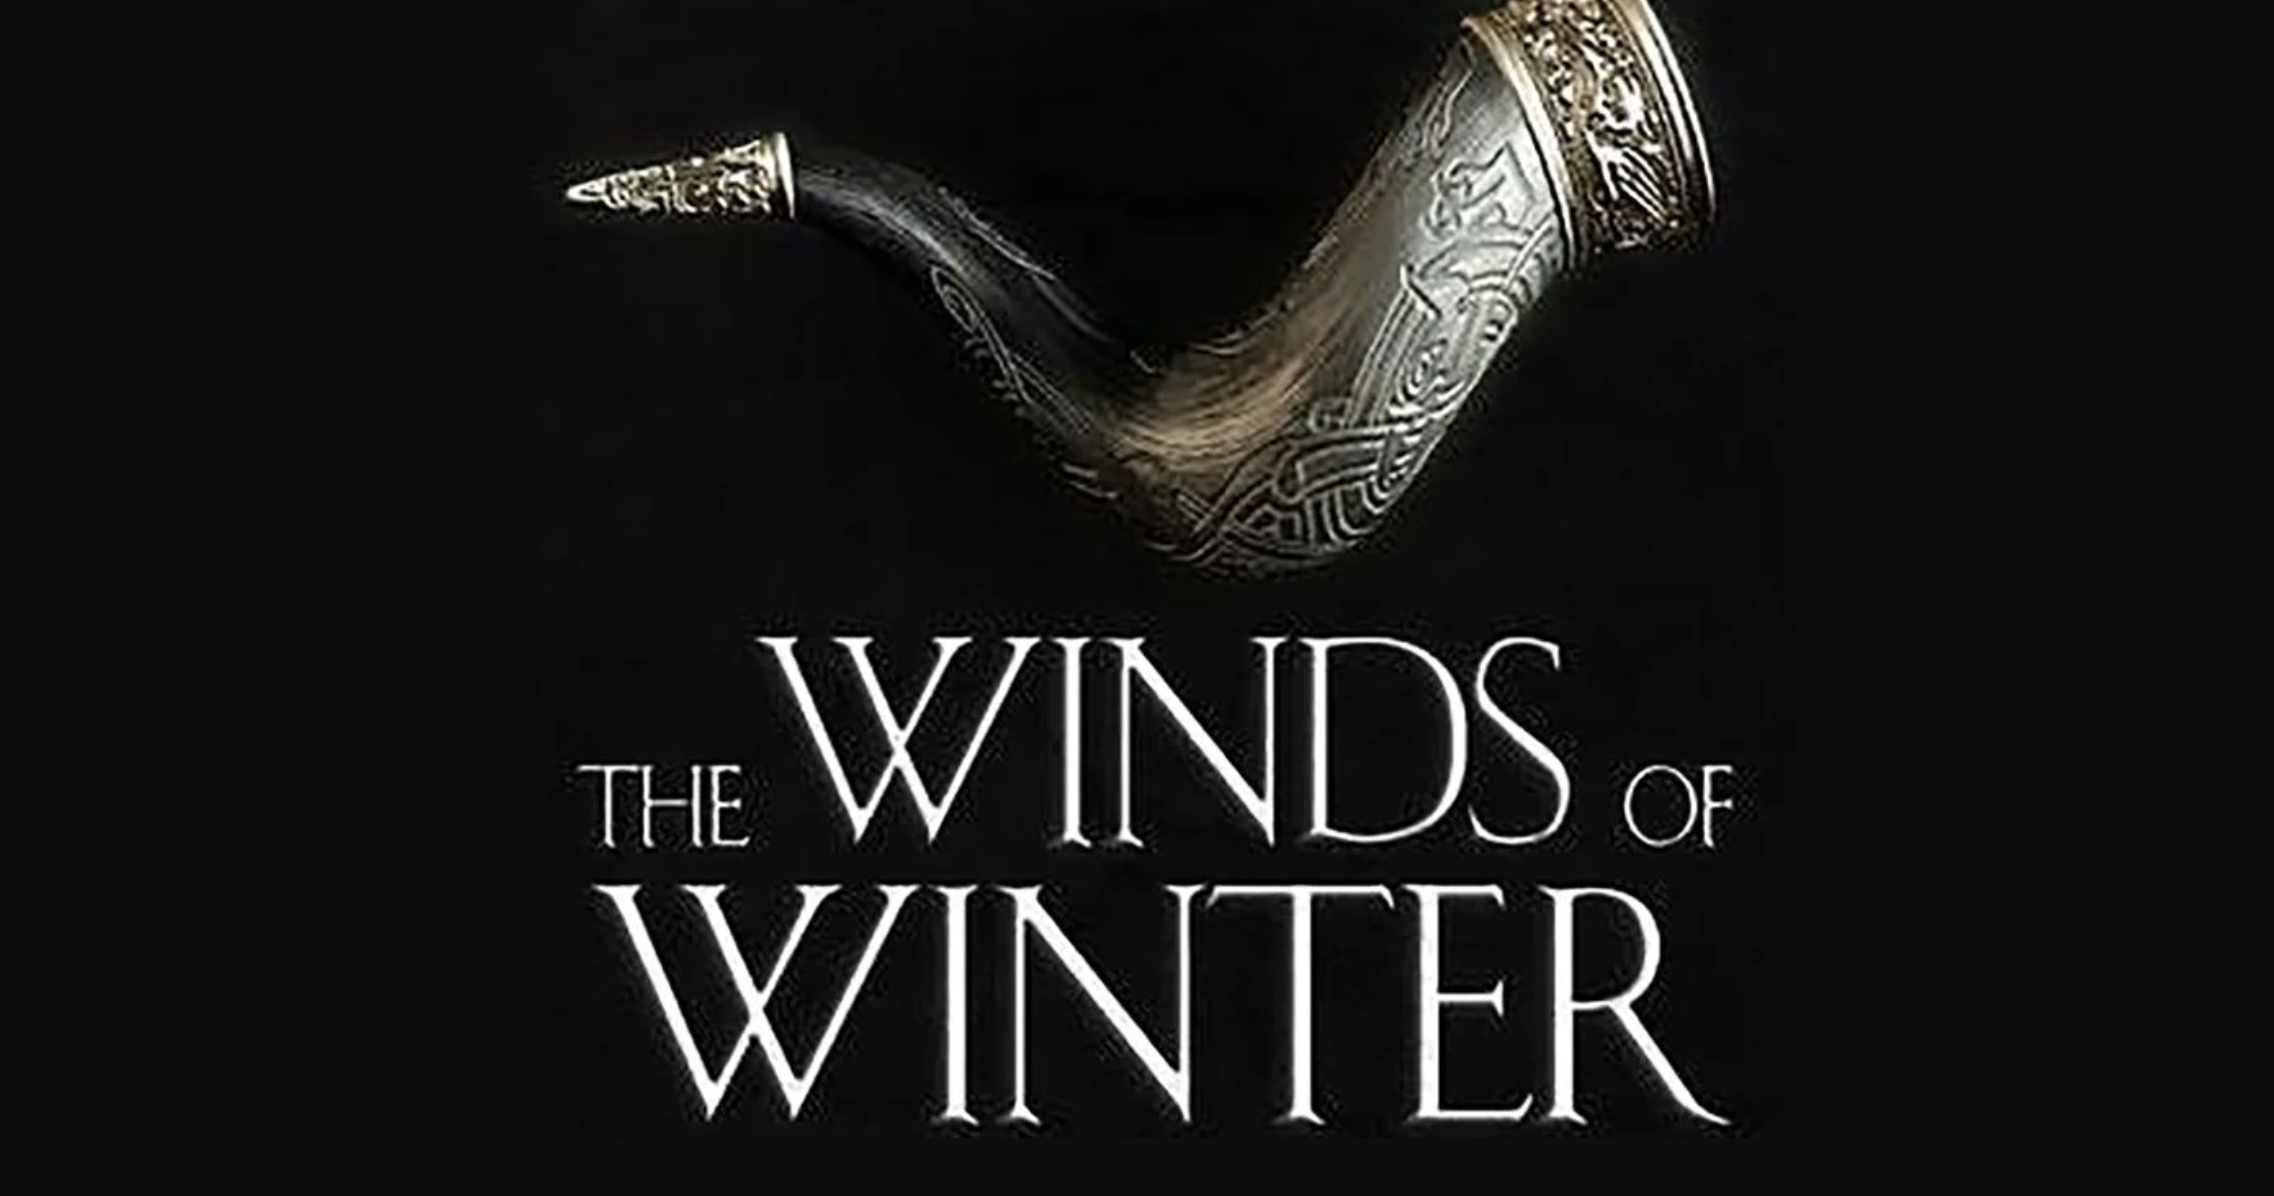 Will The Winds of Winter be ever Finished?